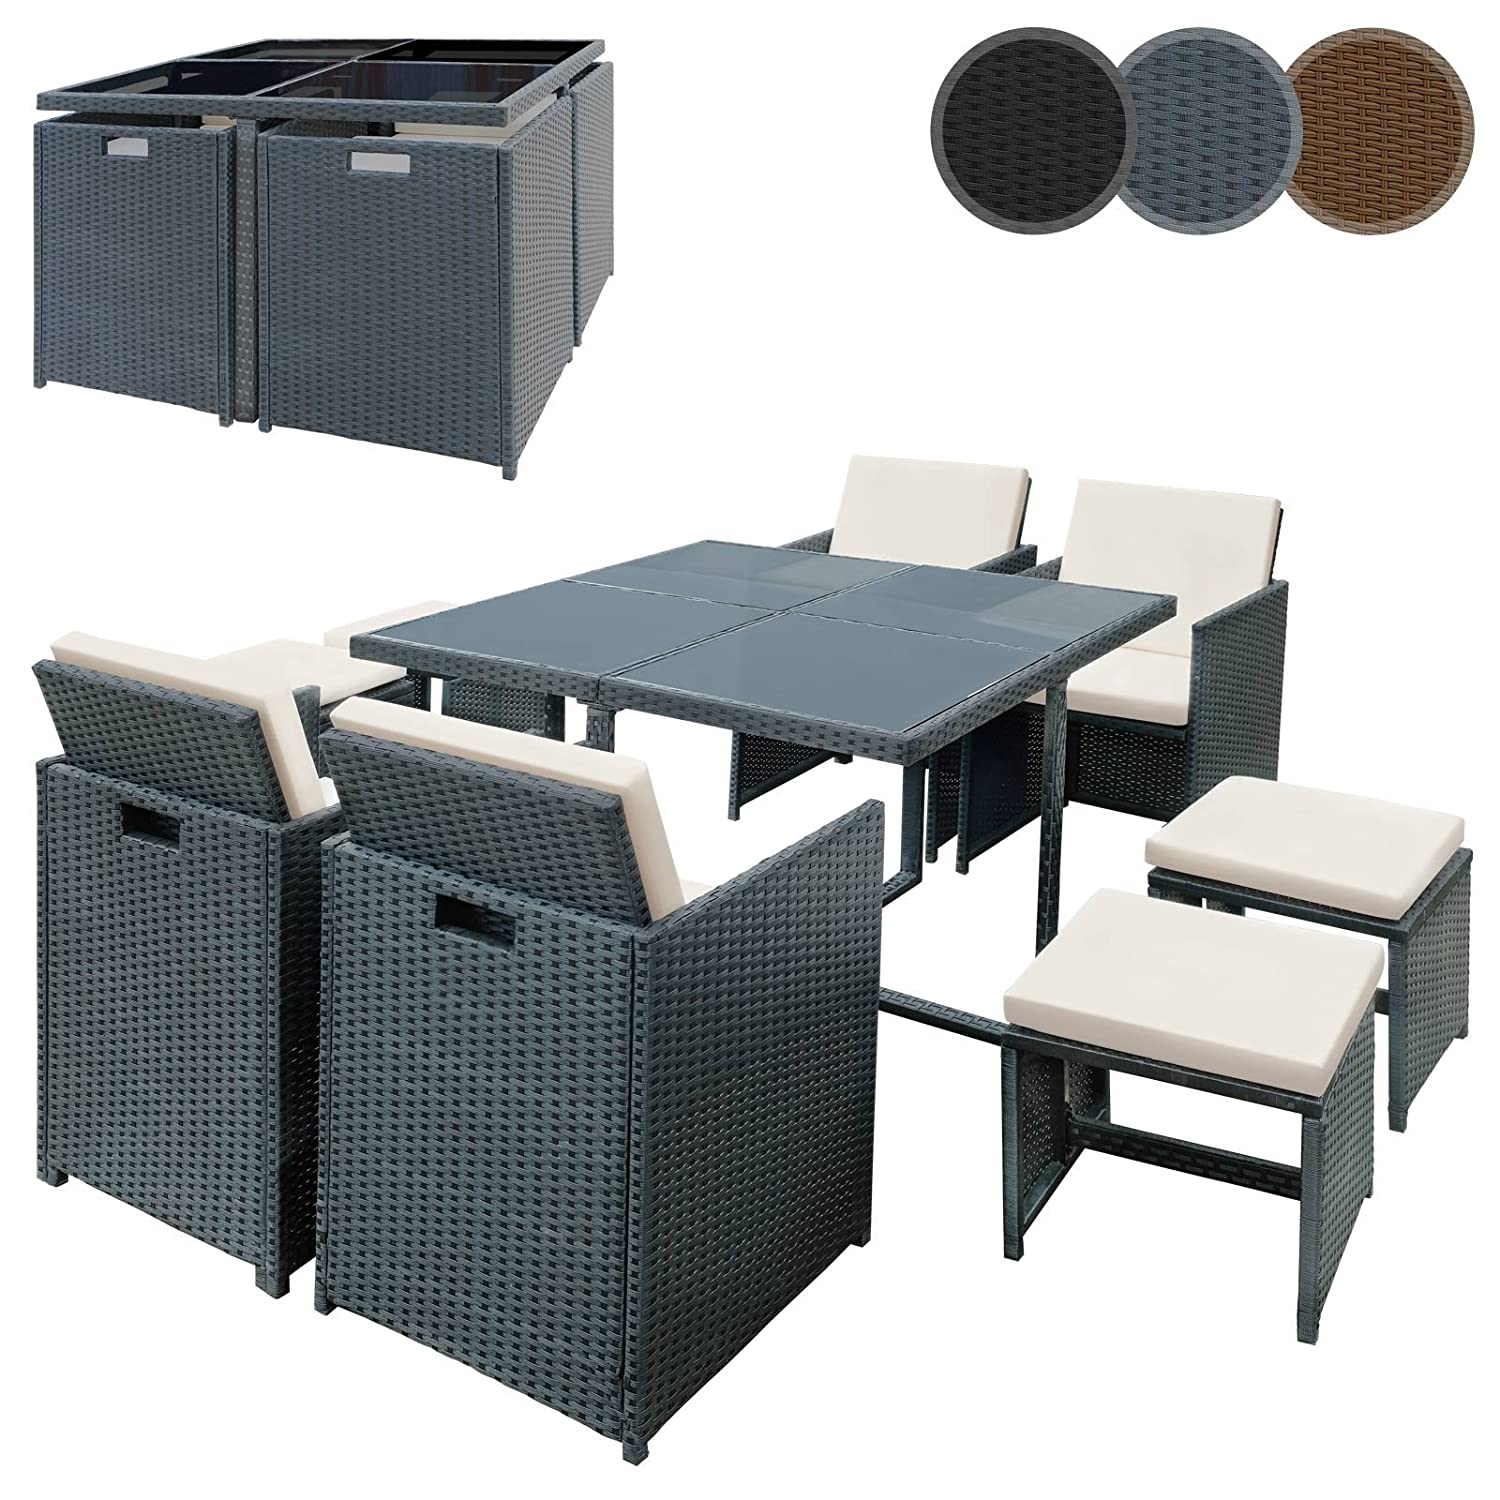 miadomodo polyrattan sitzgruppe sitzgarnitur gartenm bel 9 teilig in der farbe nach ihrer wahl. Black Bedroom Furniture Sets. Home Design Ideas